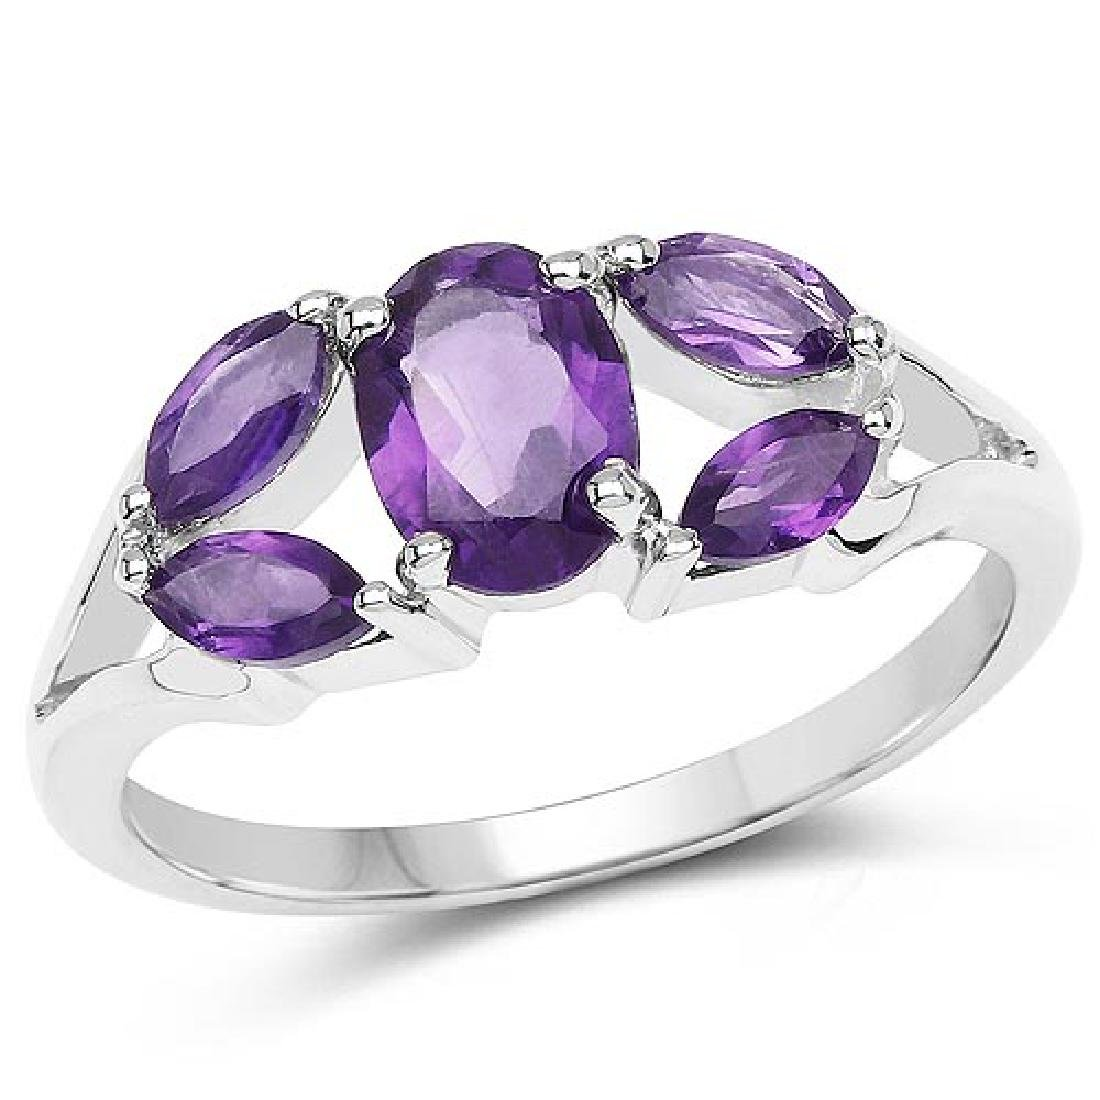 1.40 Carat Genuine Amethyst .925 Sterling Silver Ring